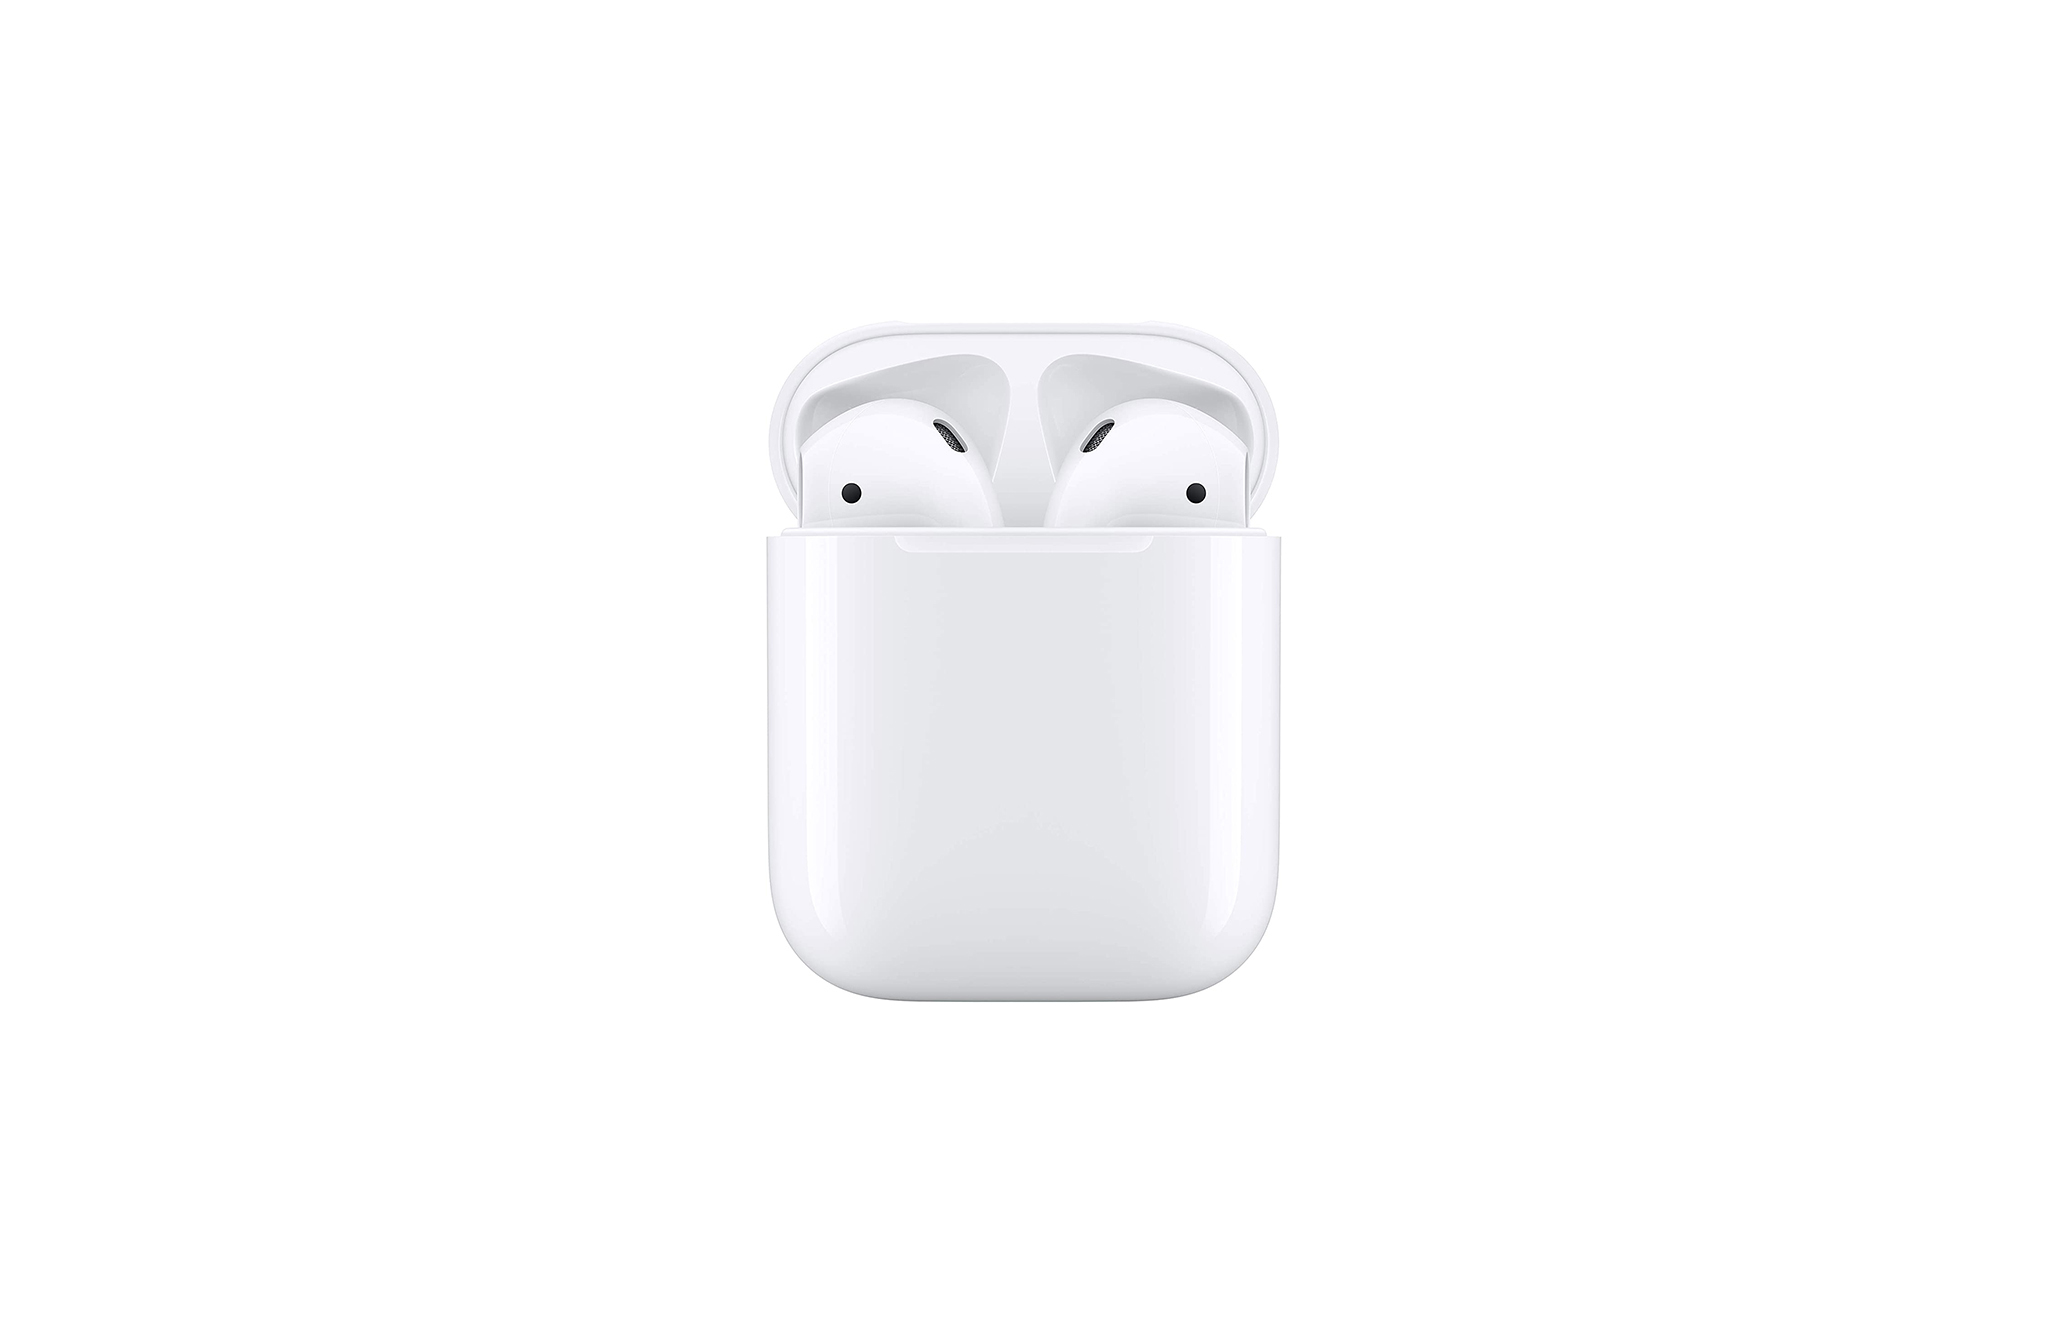 Apple Airpods with Wired Charging Case Amazon